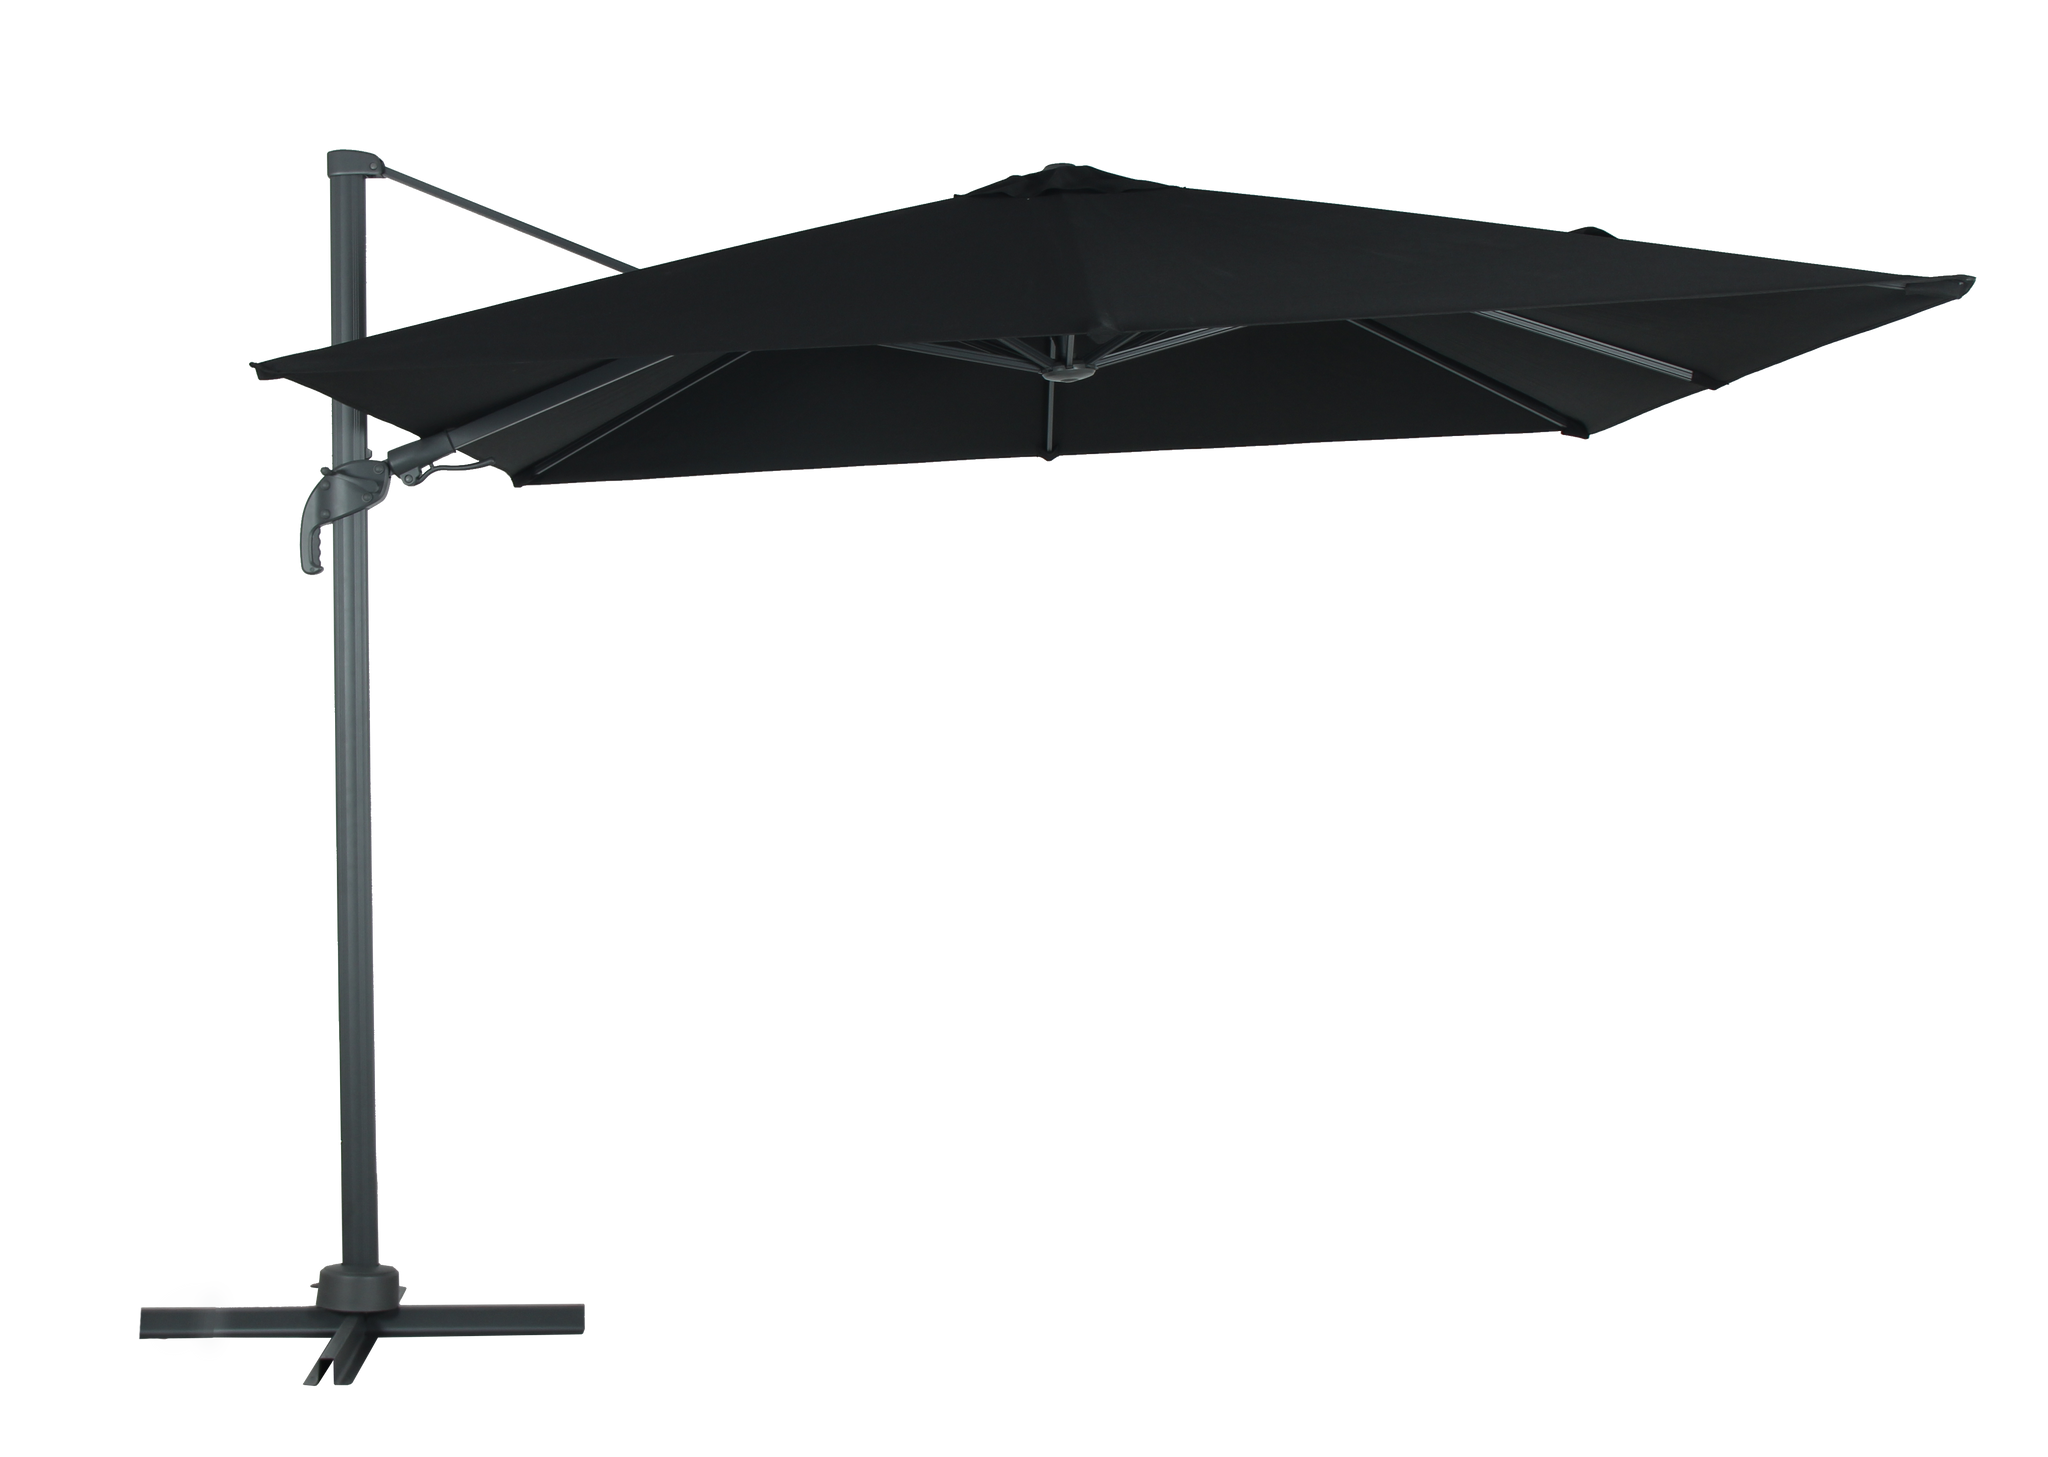 Brighton Outdoor Cantilever Umbrella - Black